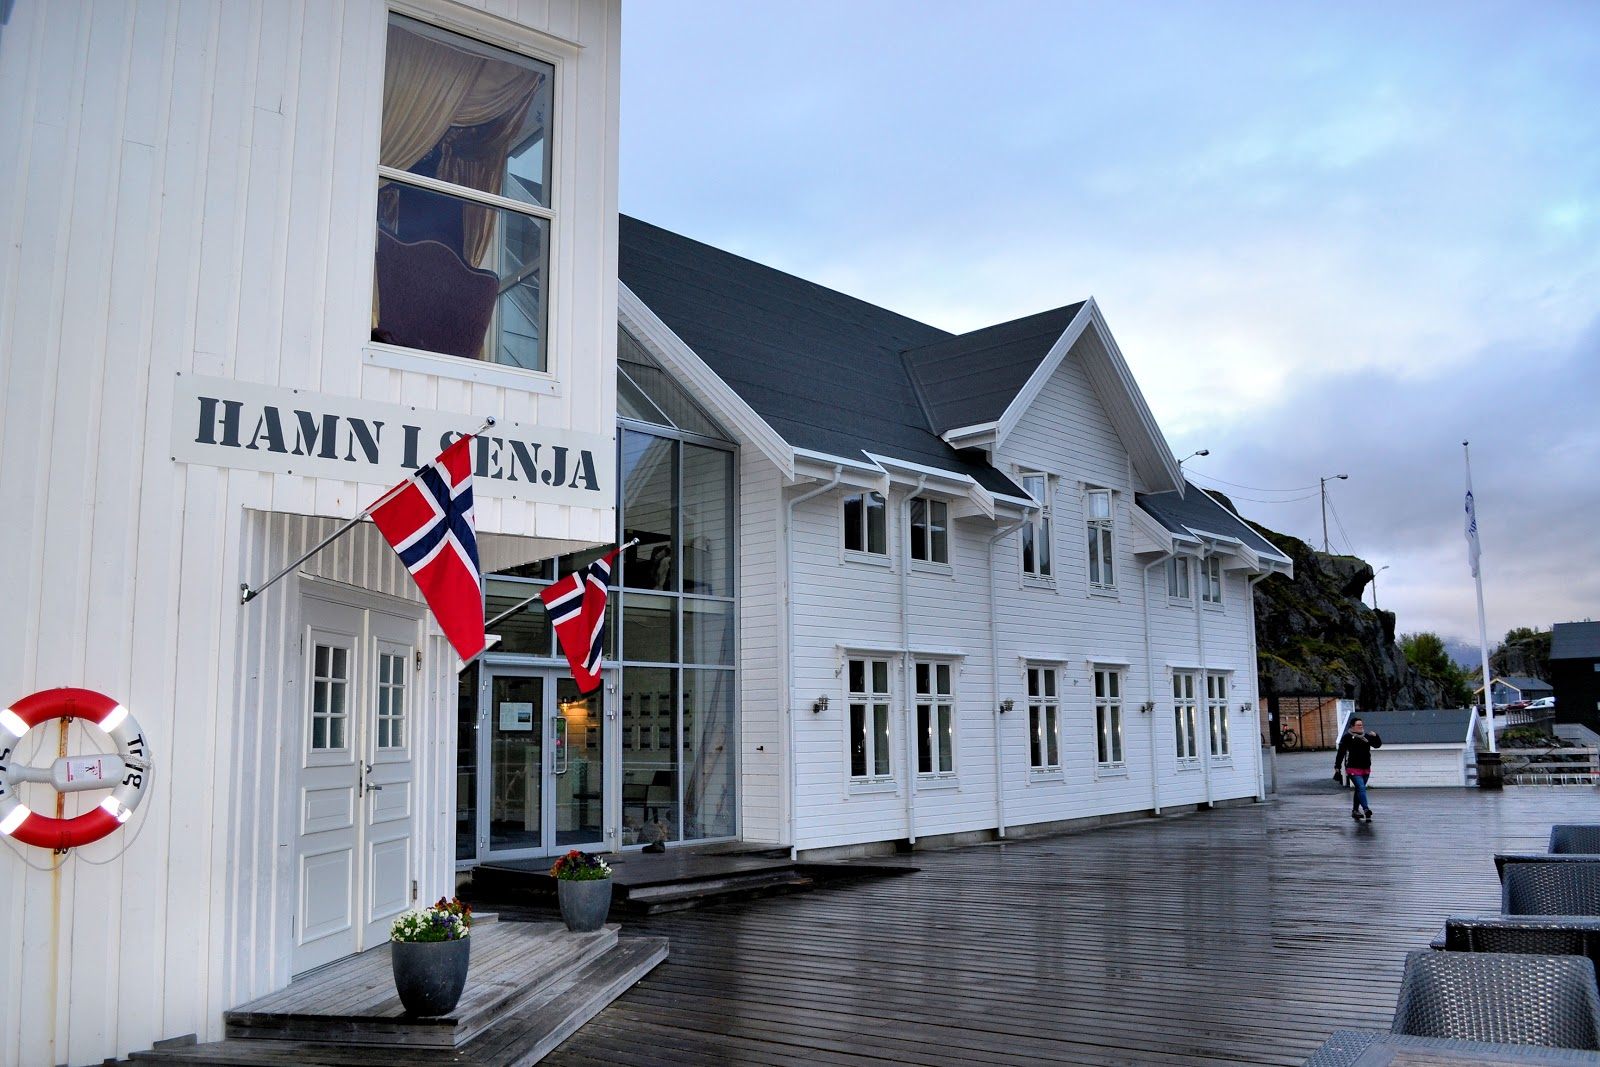 The main entrance and restaurant location at Hamn I Senja.